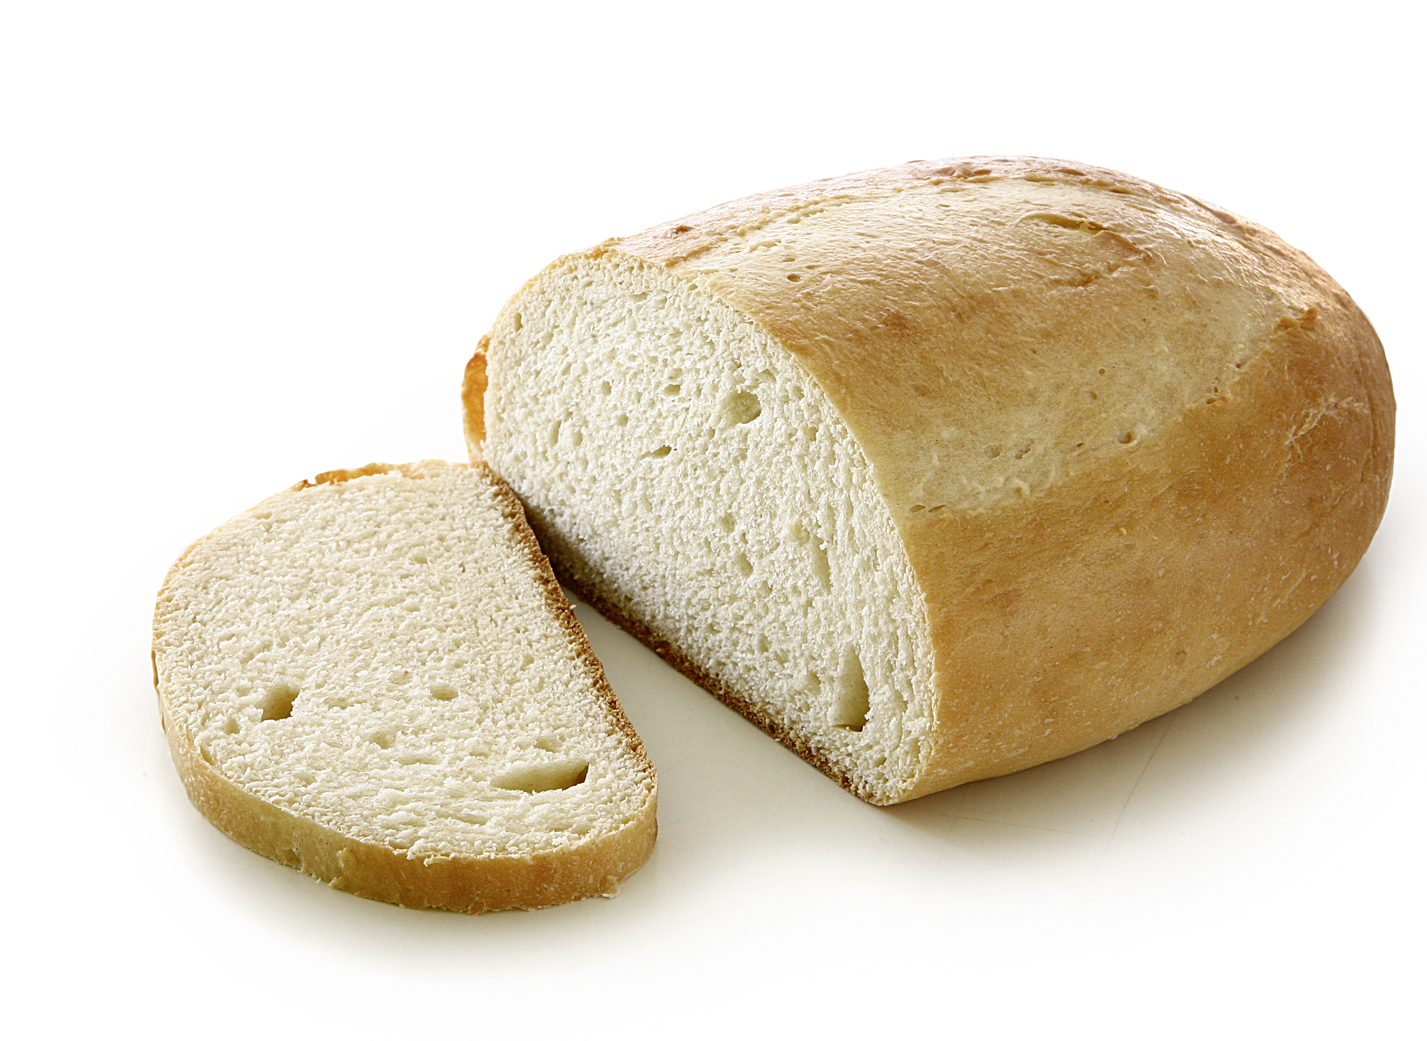 Fine White Bread - Yeast raised pastries baked without form/ thaw only/ measures: 21 x 13.5 cm